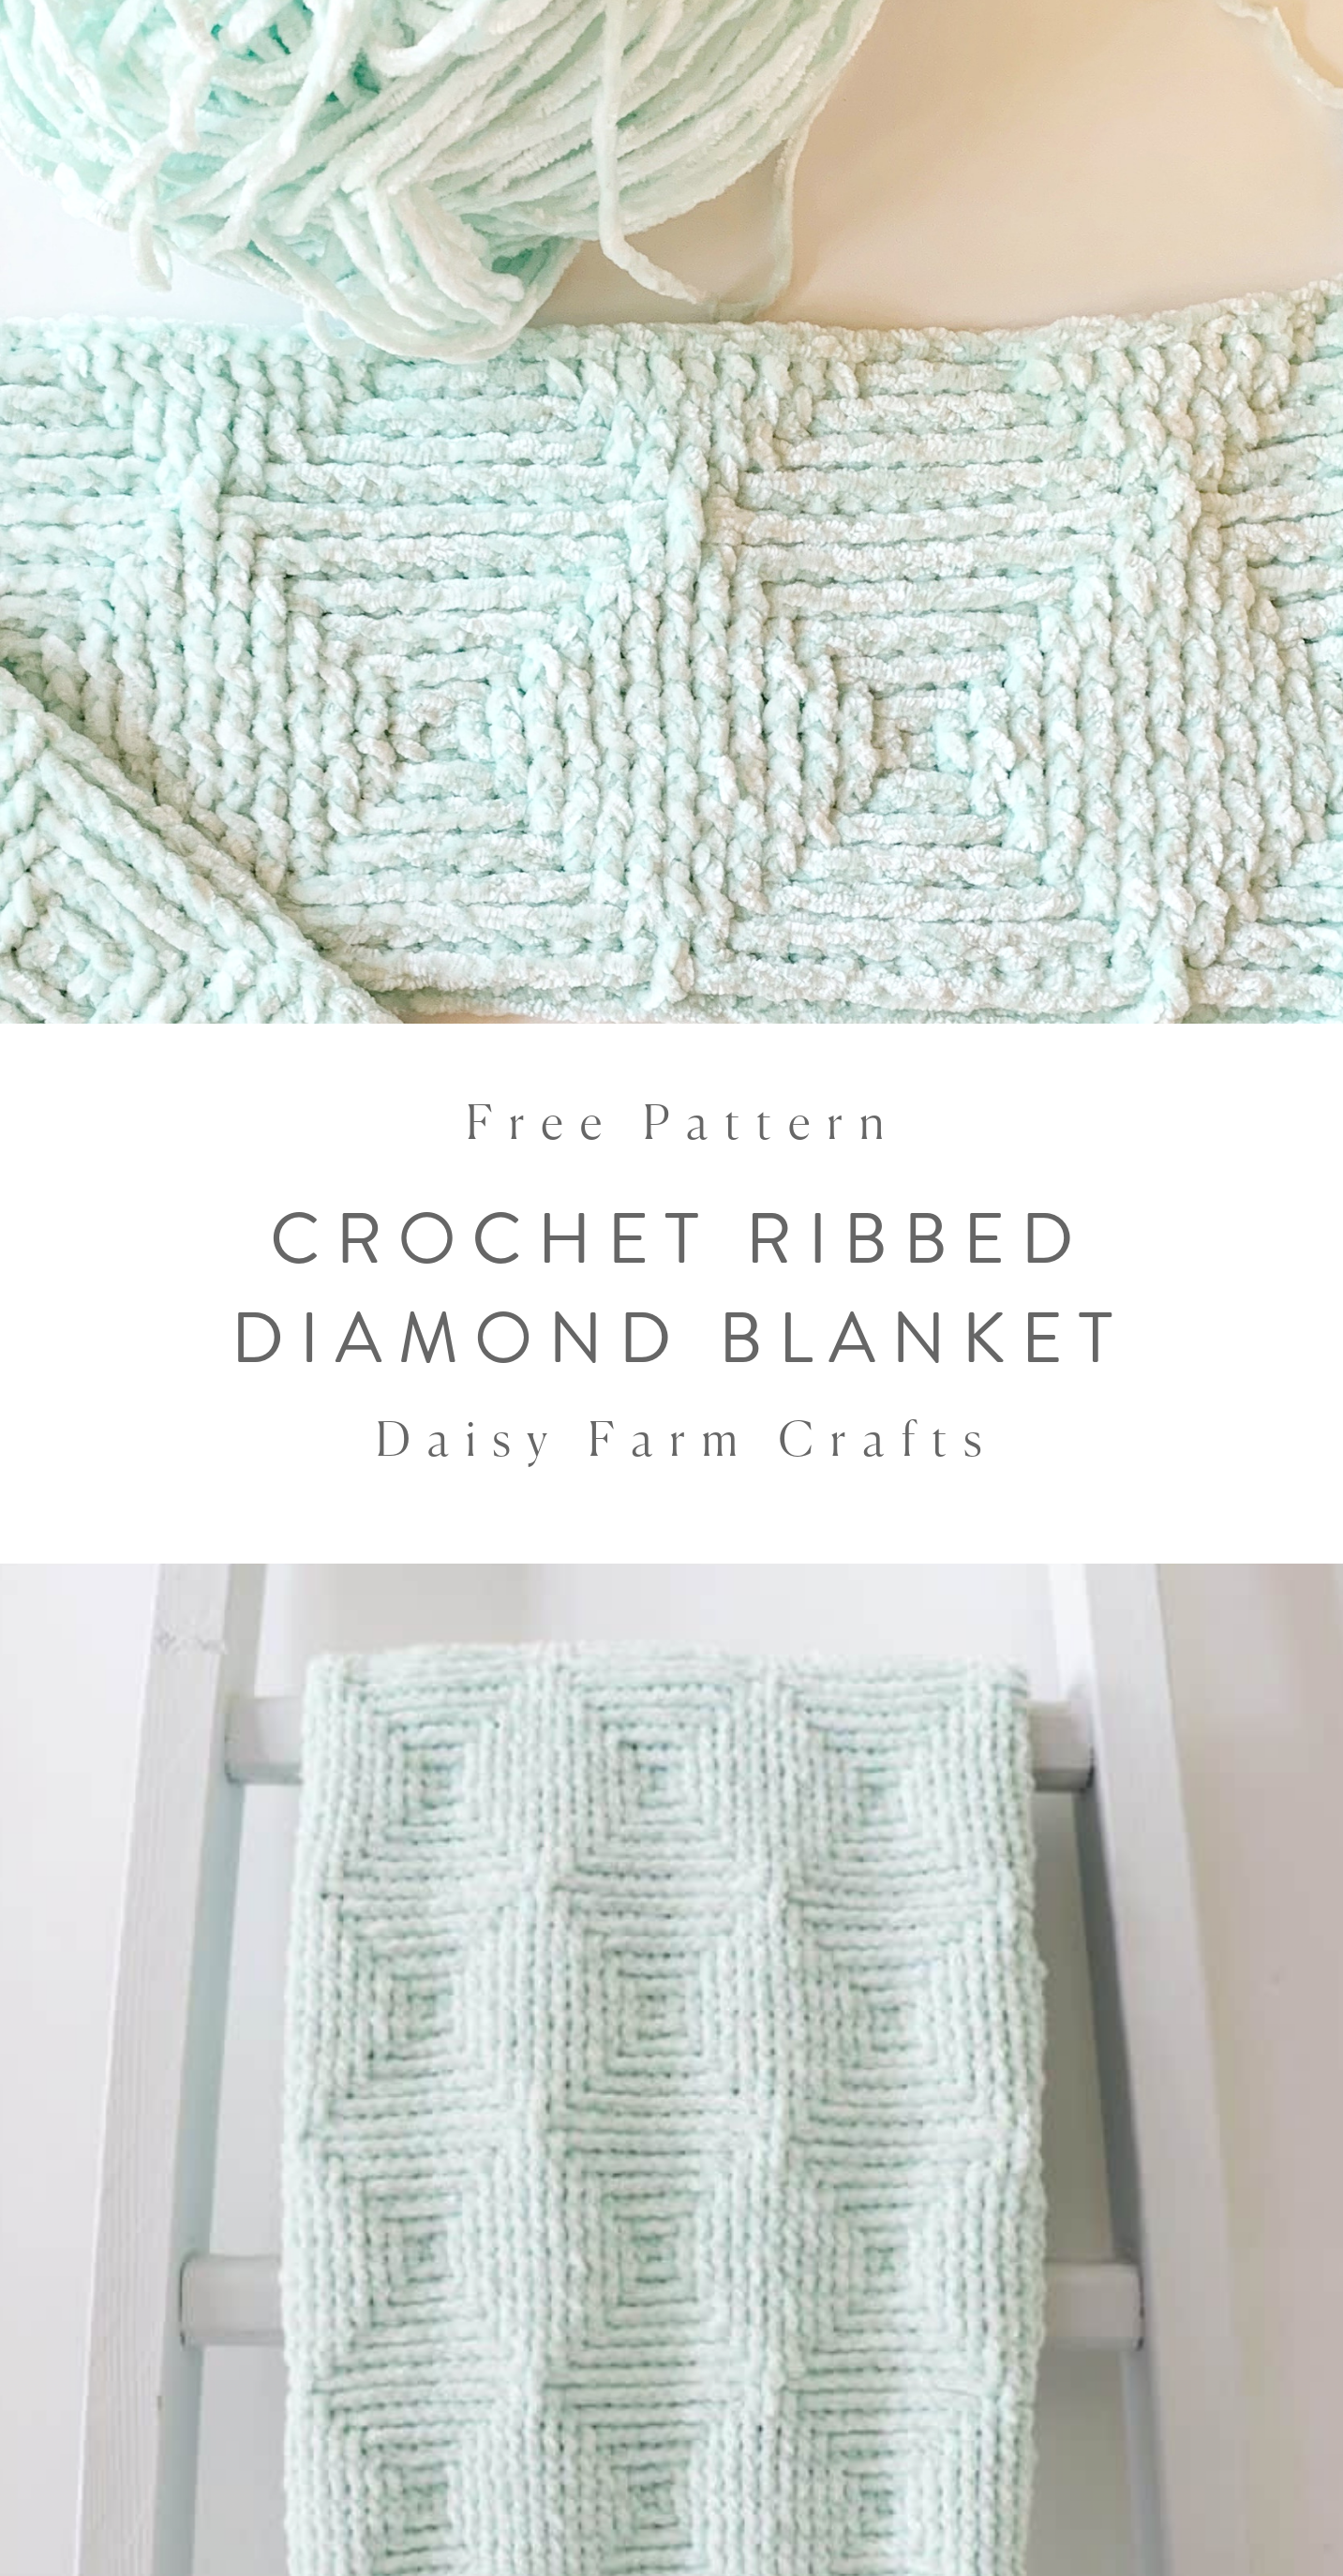 Free Crochet Blanket Pattern - Ribbed Diamond Blanket